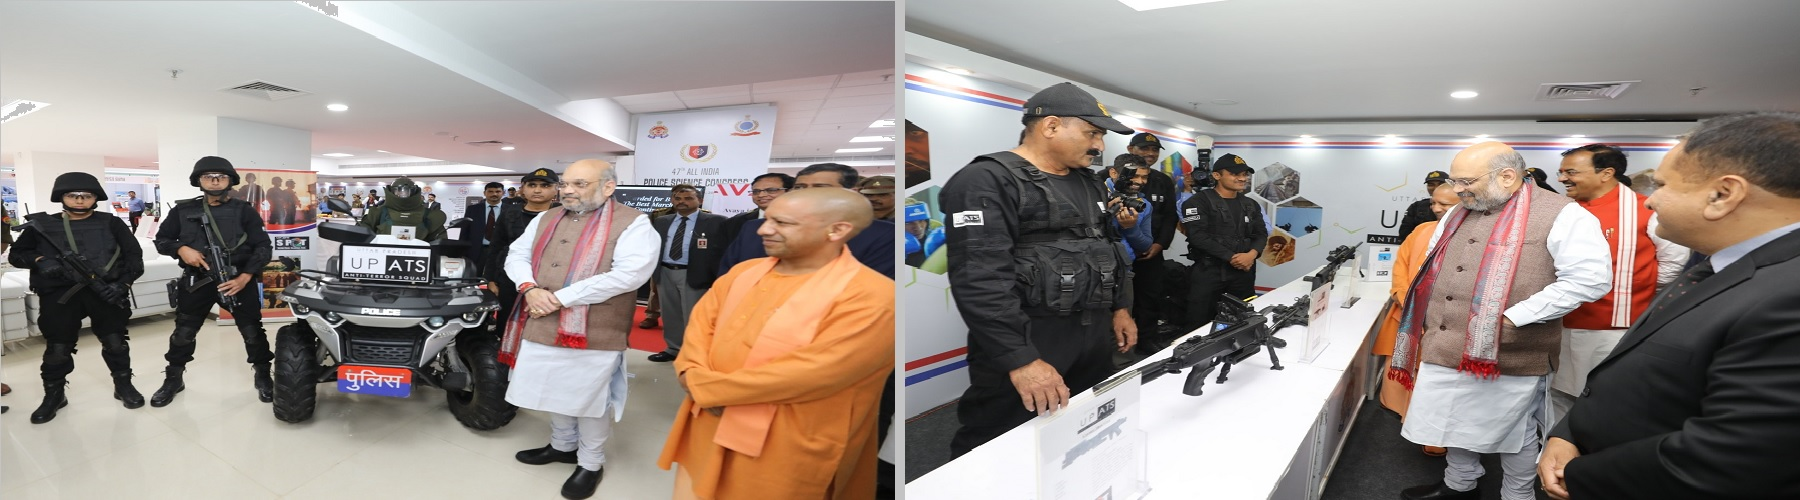 Union Minister for Home Affairs, Shri Amit Shah presided over the 47th All India Police Science Congress as Chief Guest, in Lucknow, on November 29, 2019.